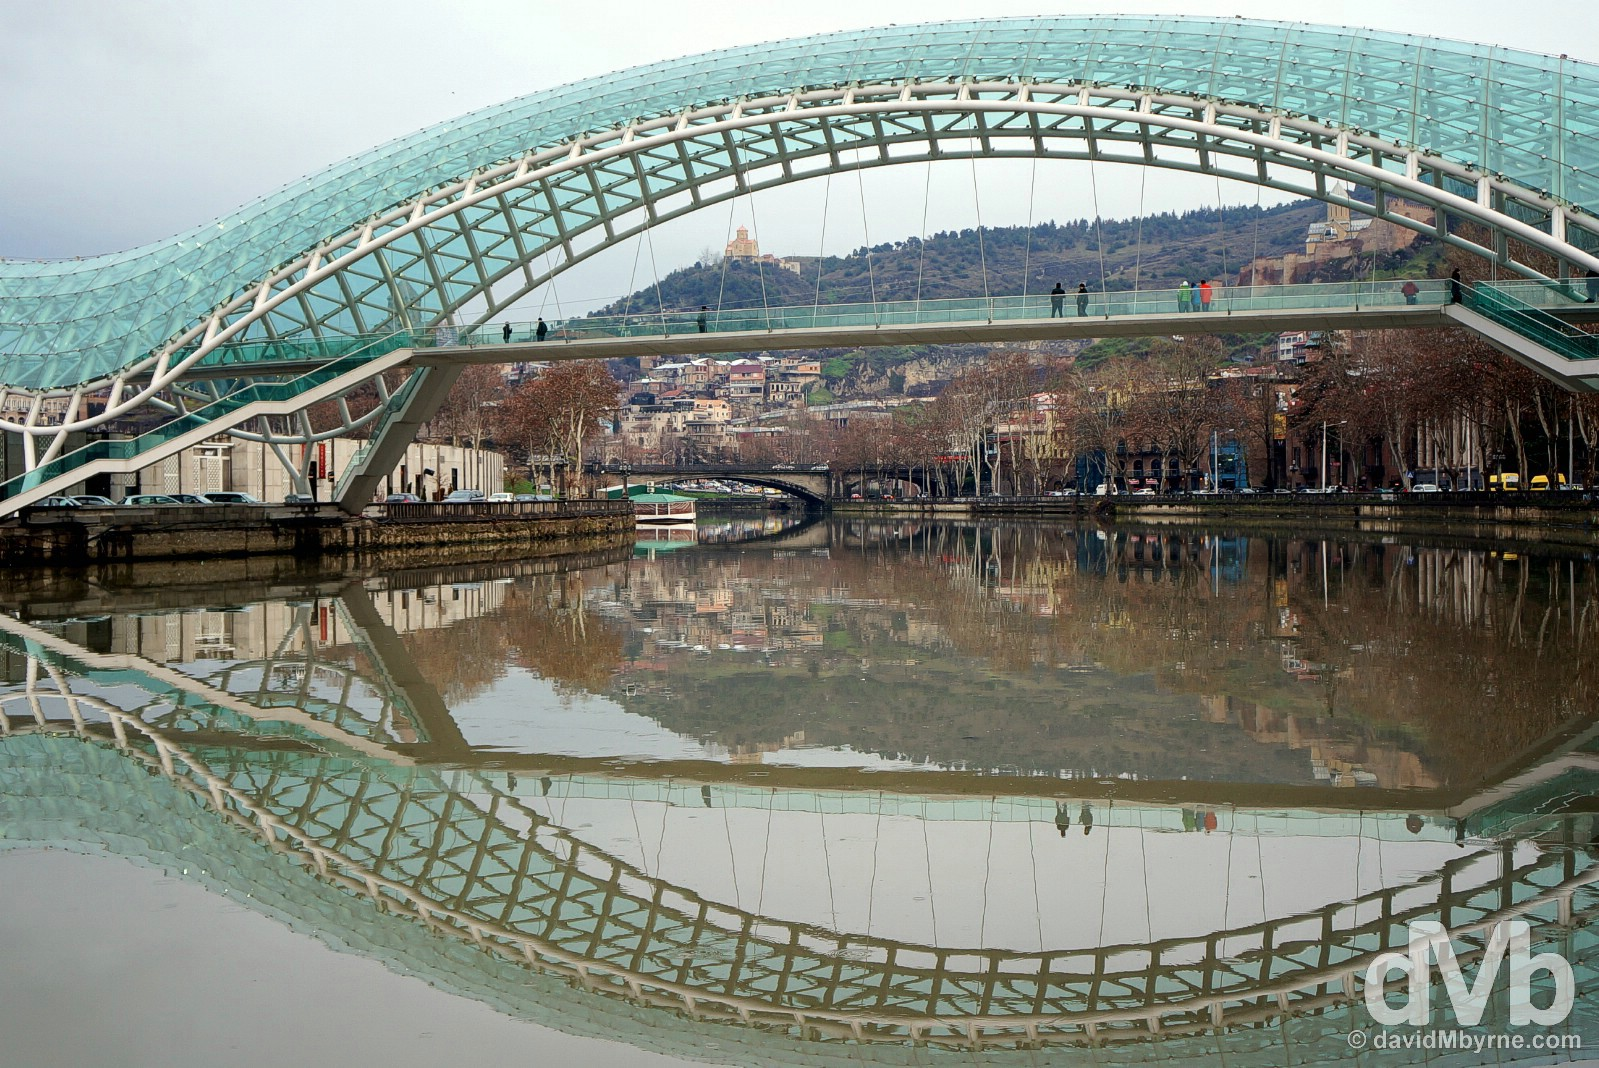 Reflections on the Kura River in Tbilisi, Georgia. March 20, 2015.